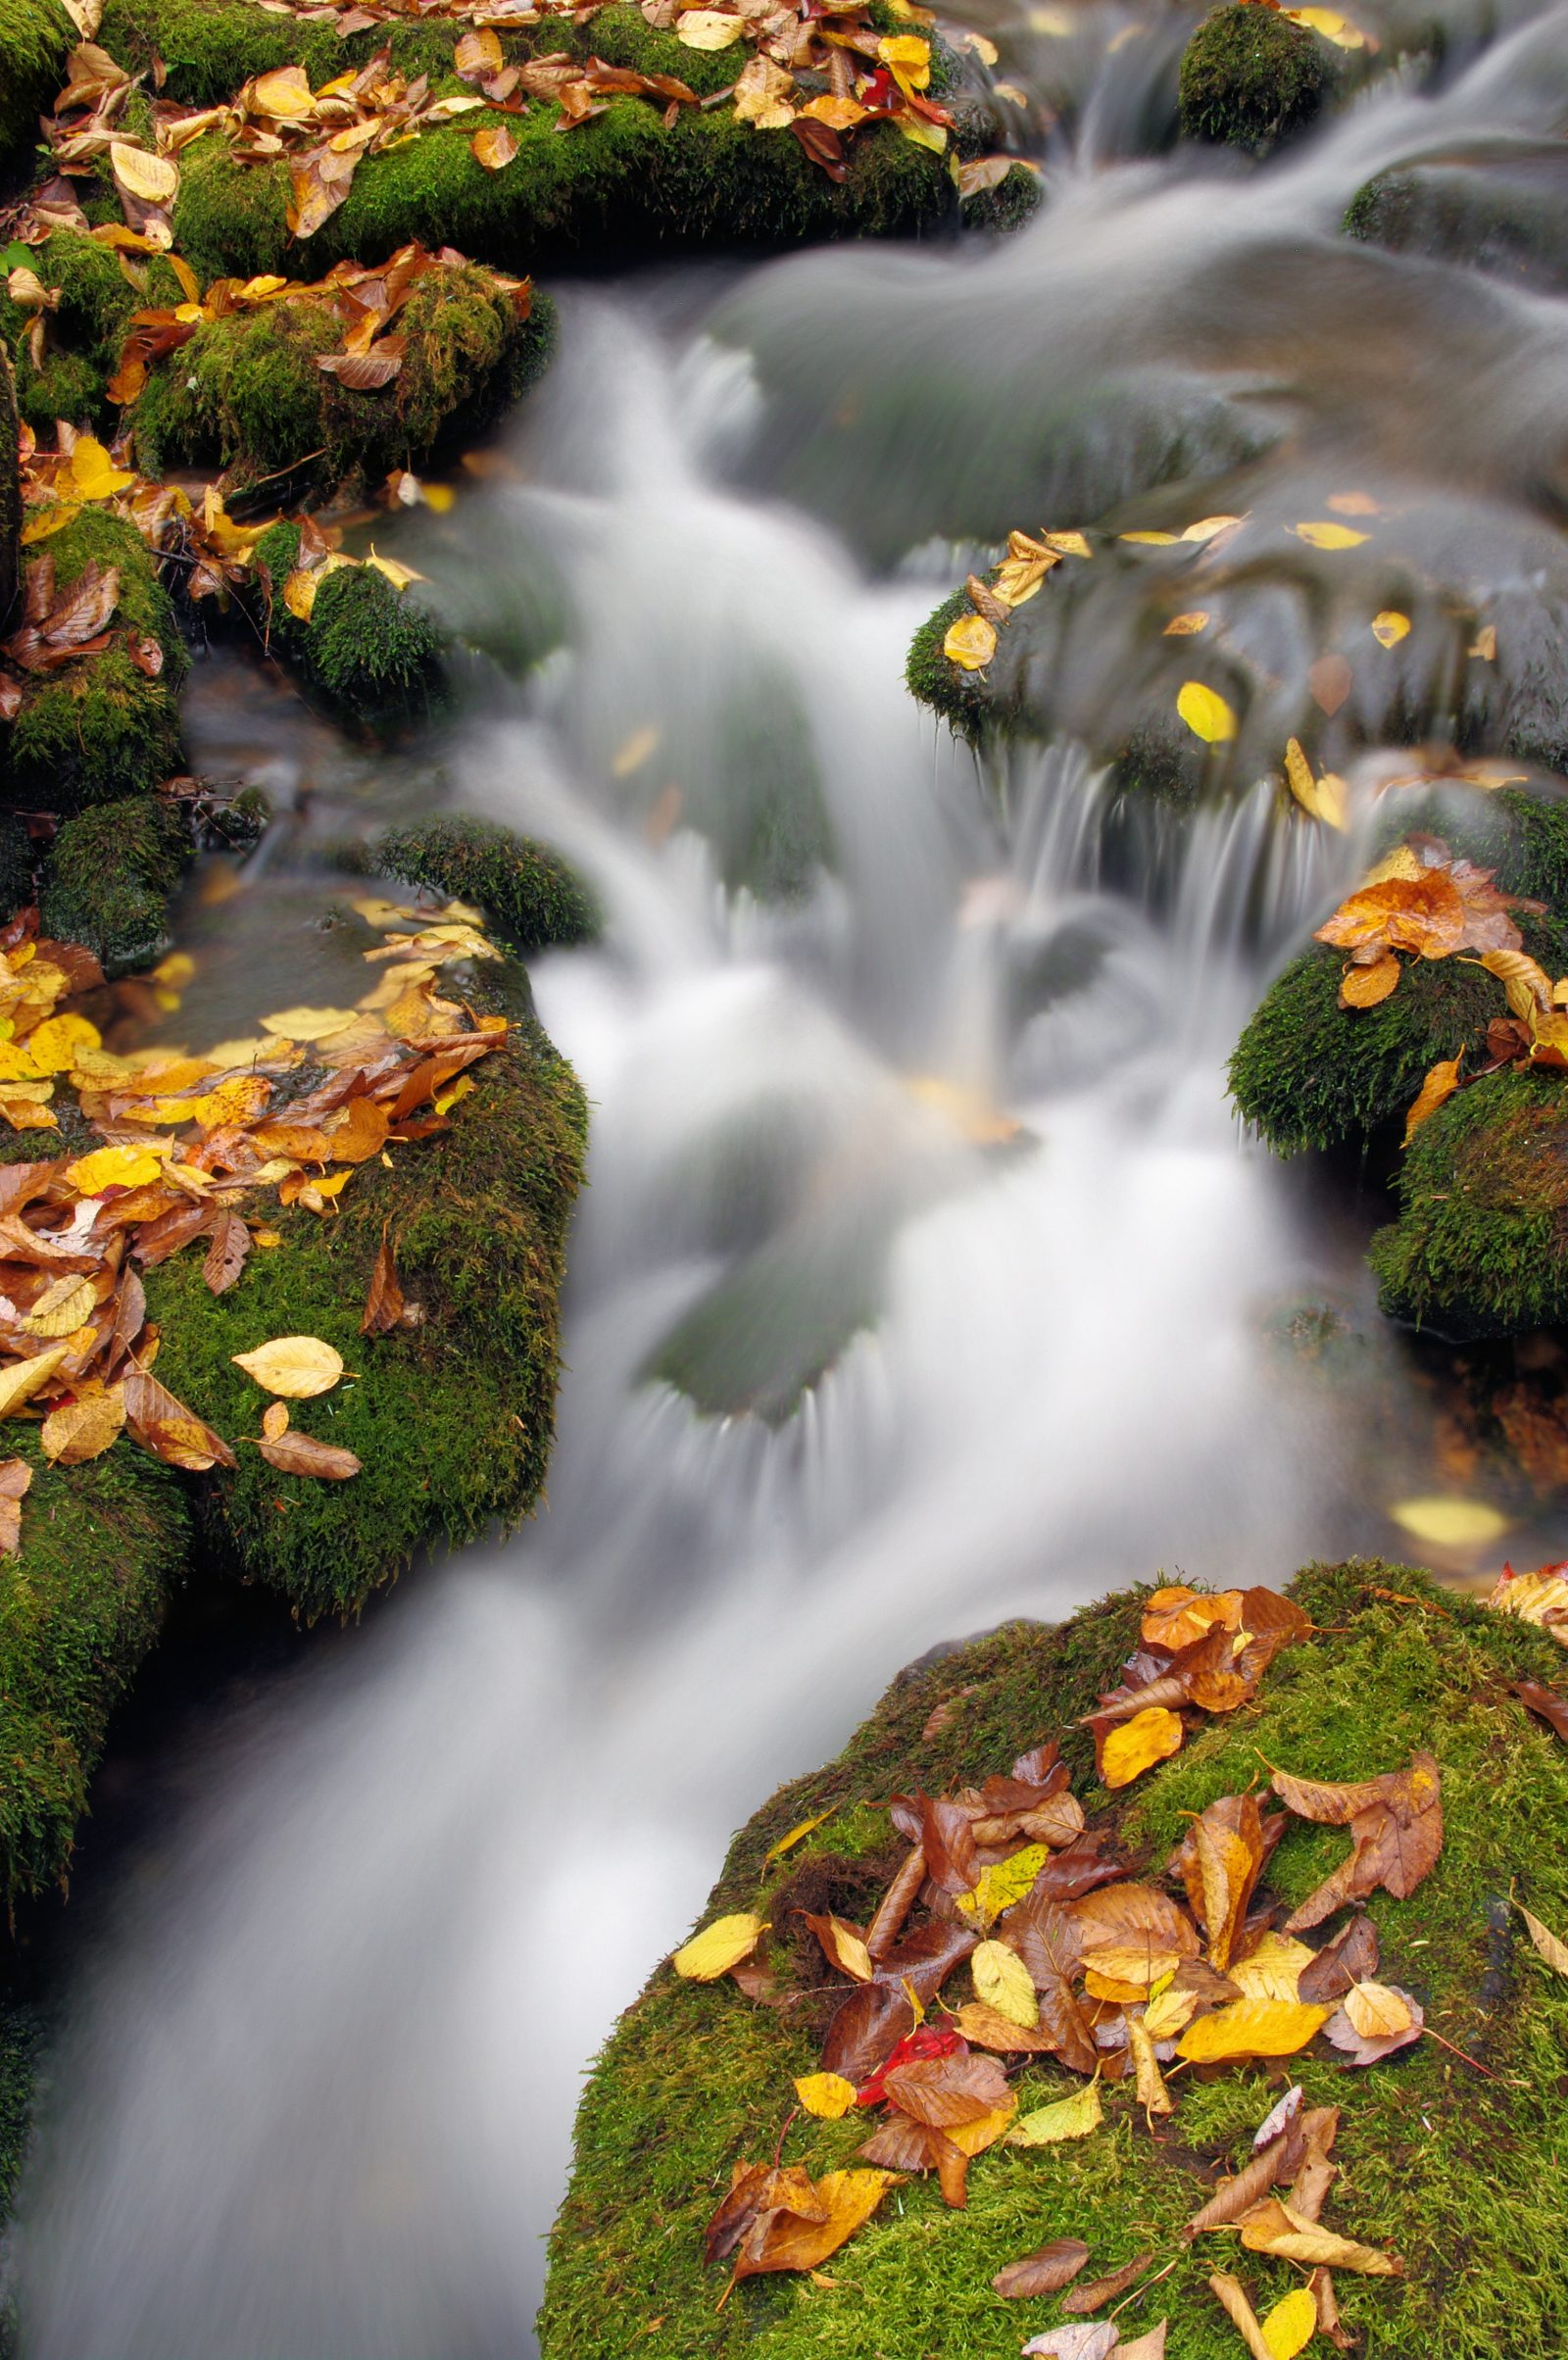 Falling Leaves and Water